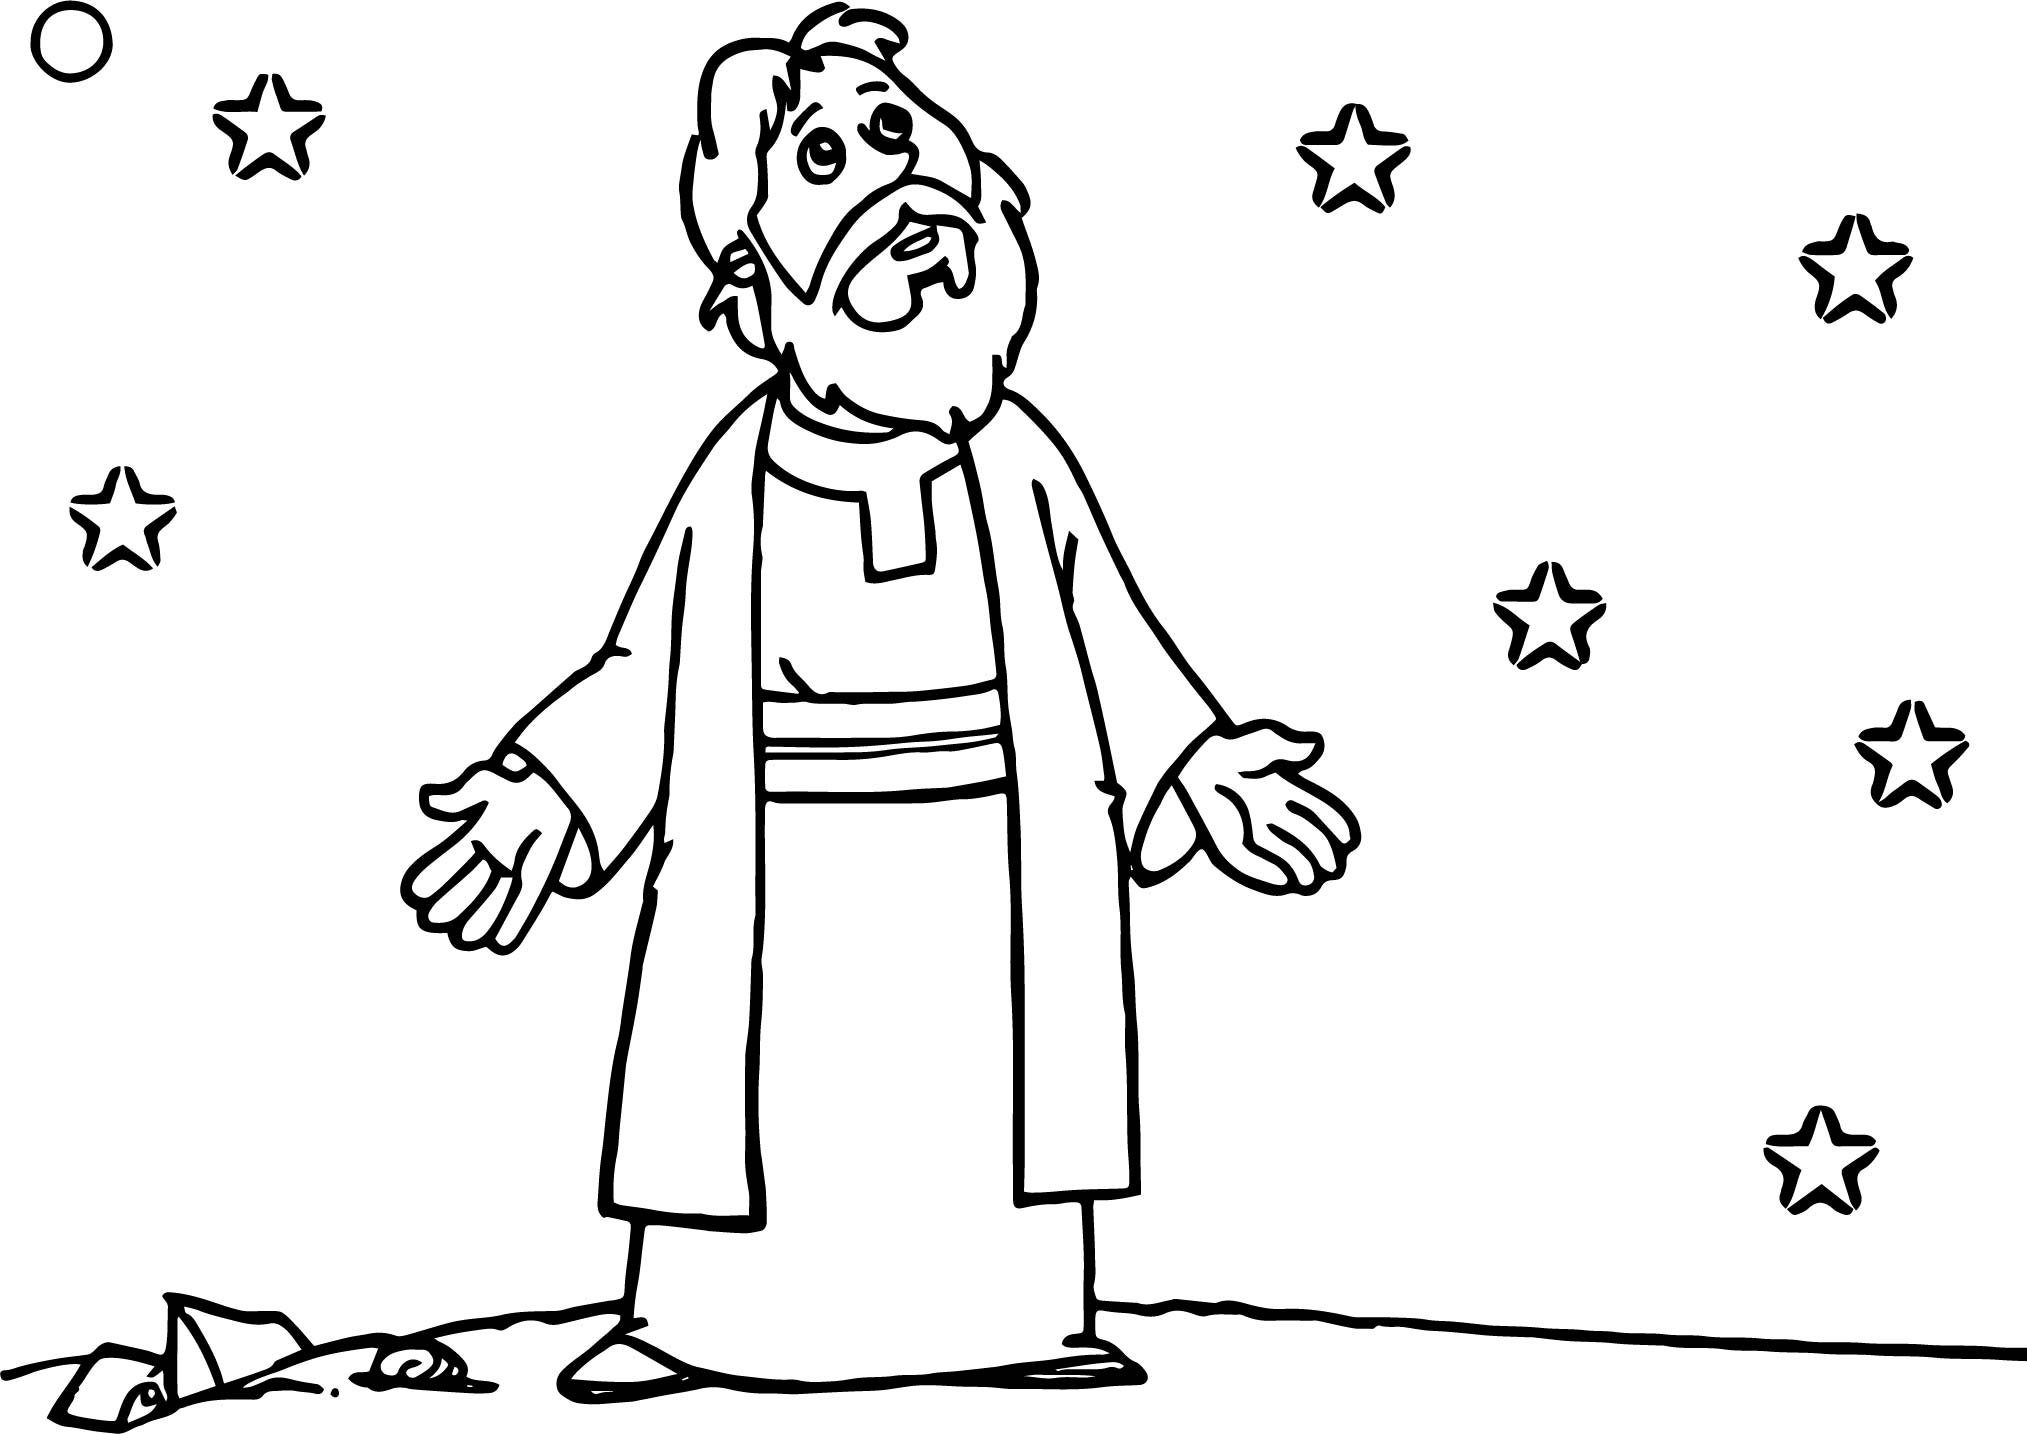 Bible Cartoon Drawing at GetDrawings.com | Free for ...